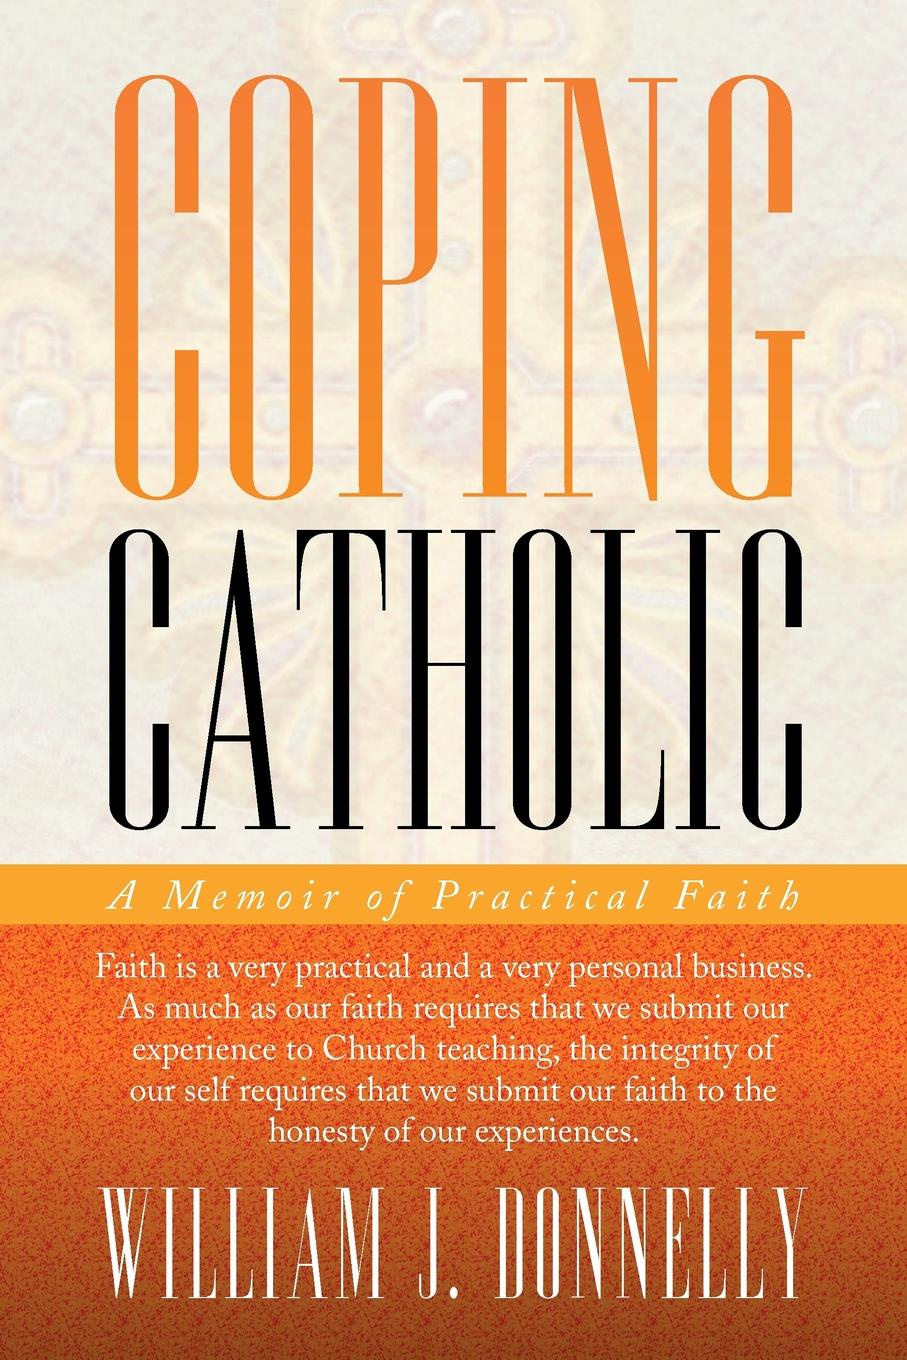 William J. Donnelly Coping Catholic. A Memoir of Practical Faith william j donnelly coping catholic a memoir of practical faith